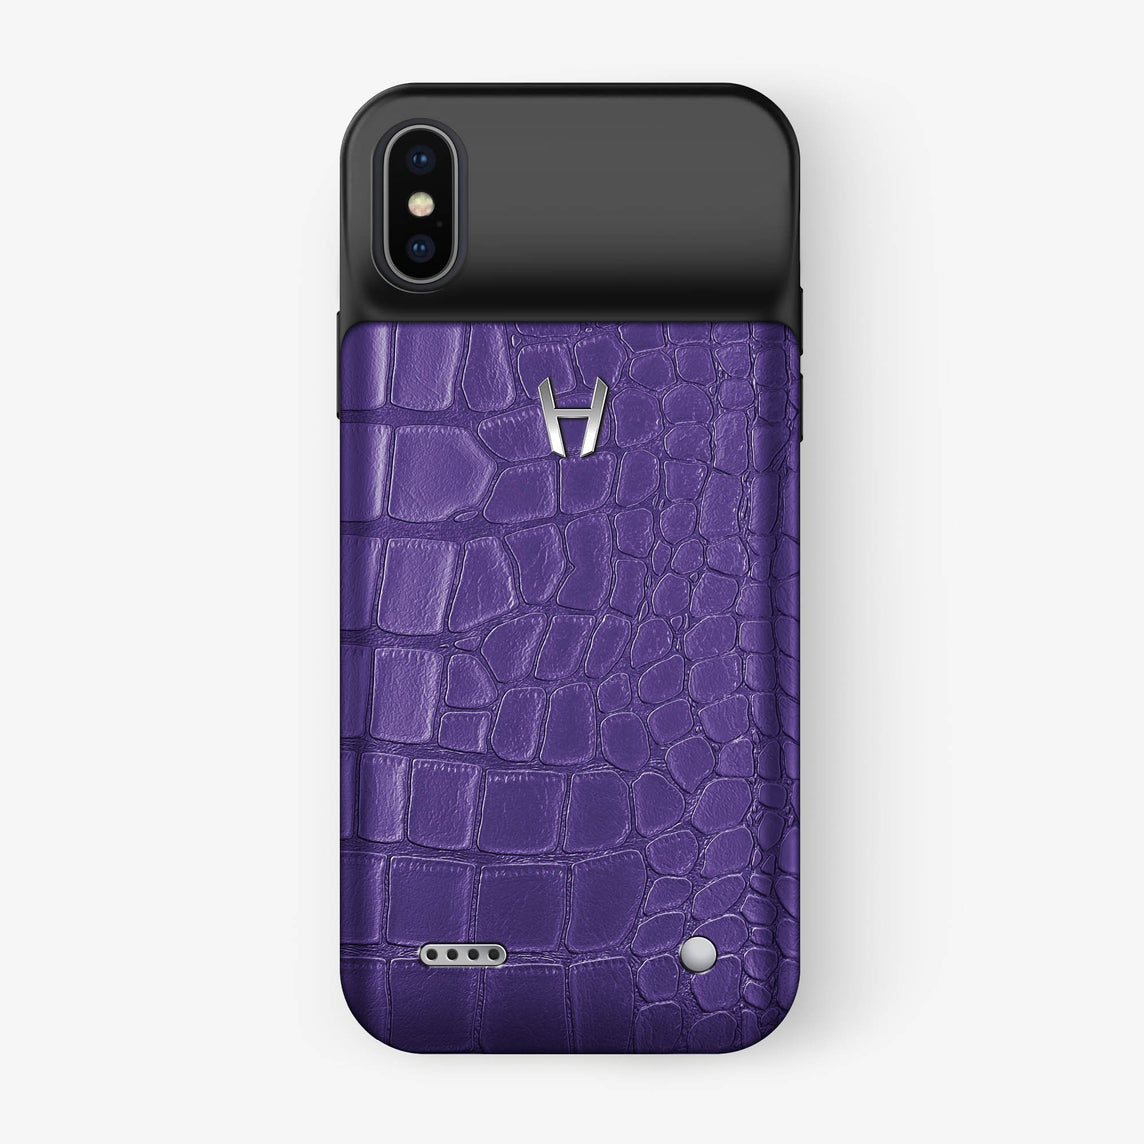 Alligator Battery Case iPhone X/Xs | Purple - Stainless Steel - Hadoro